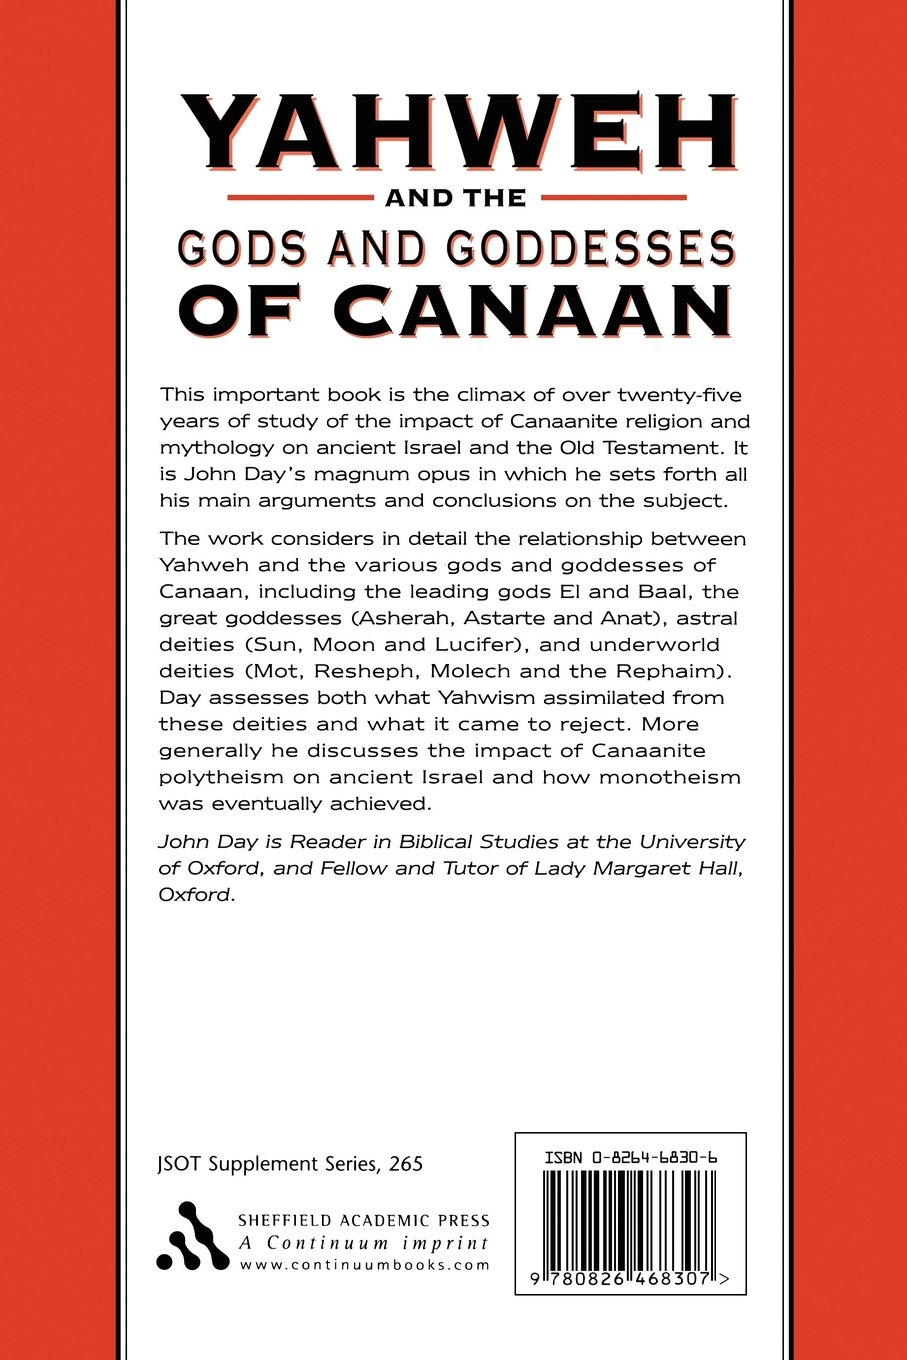 Yahweh and the Gods and Goddesses of Canaan (The Library of